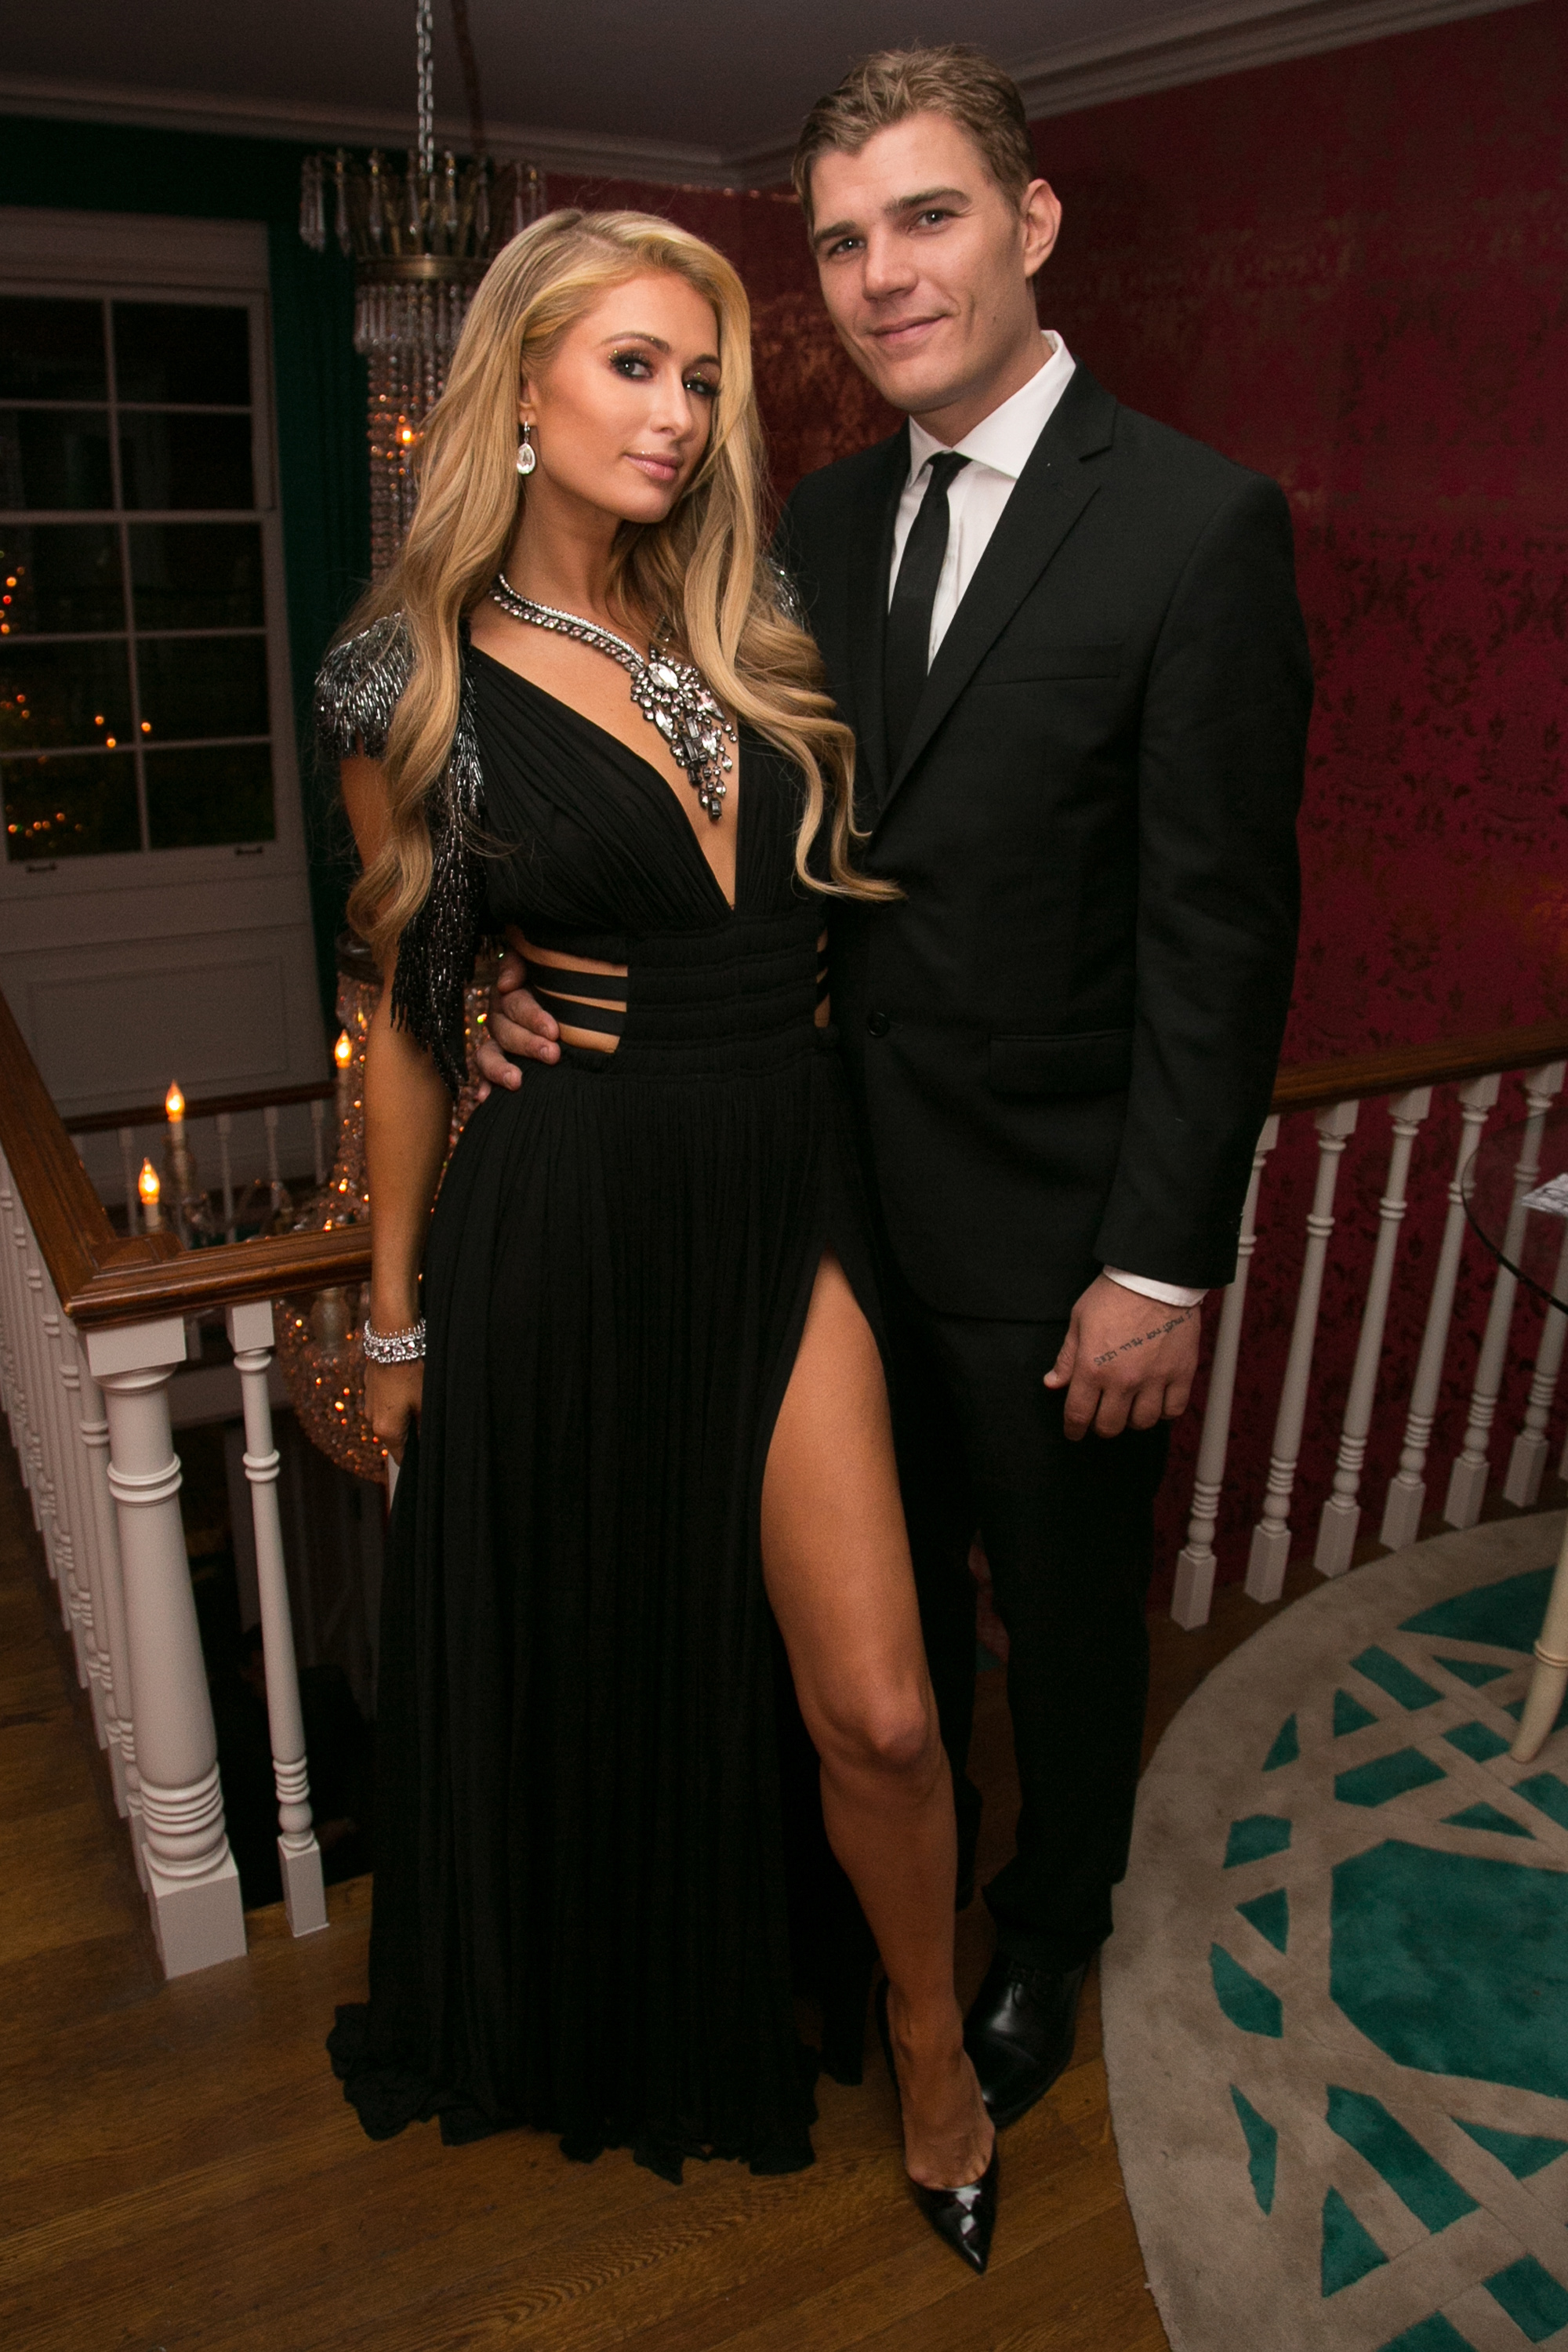 Paris Hilton (L) and Chris Zylka